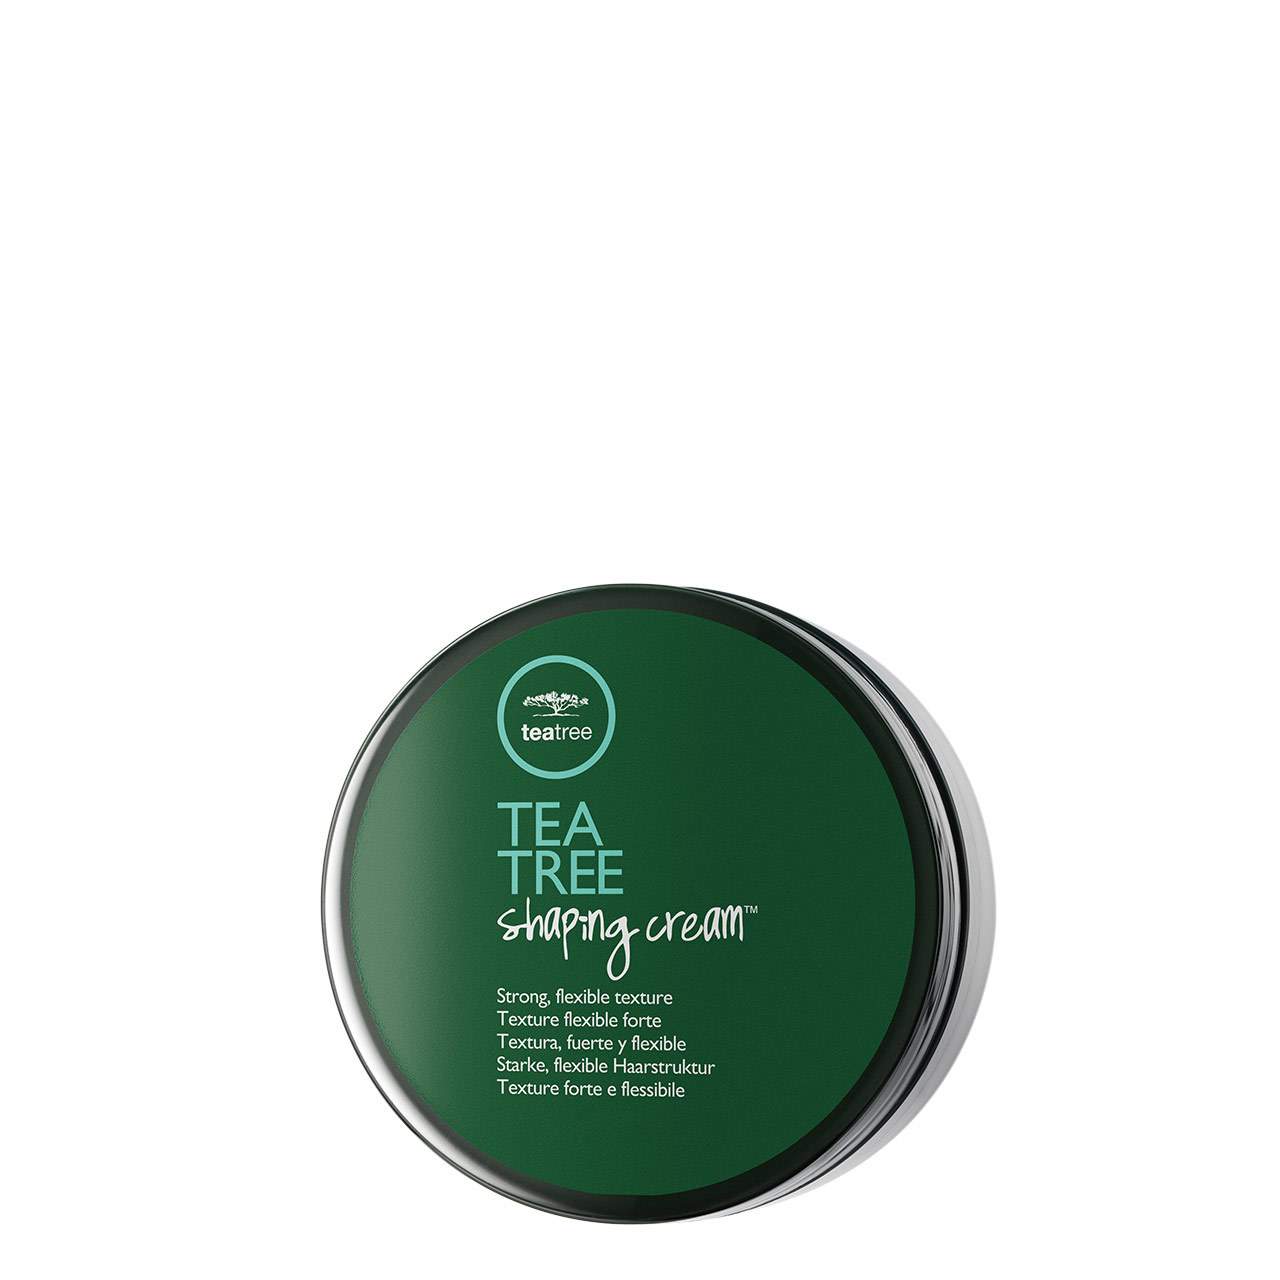 Tea Tree Shaping Cream by Paul Mitchell